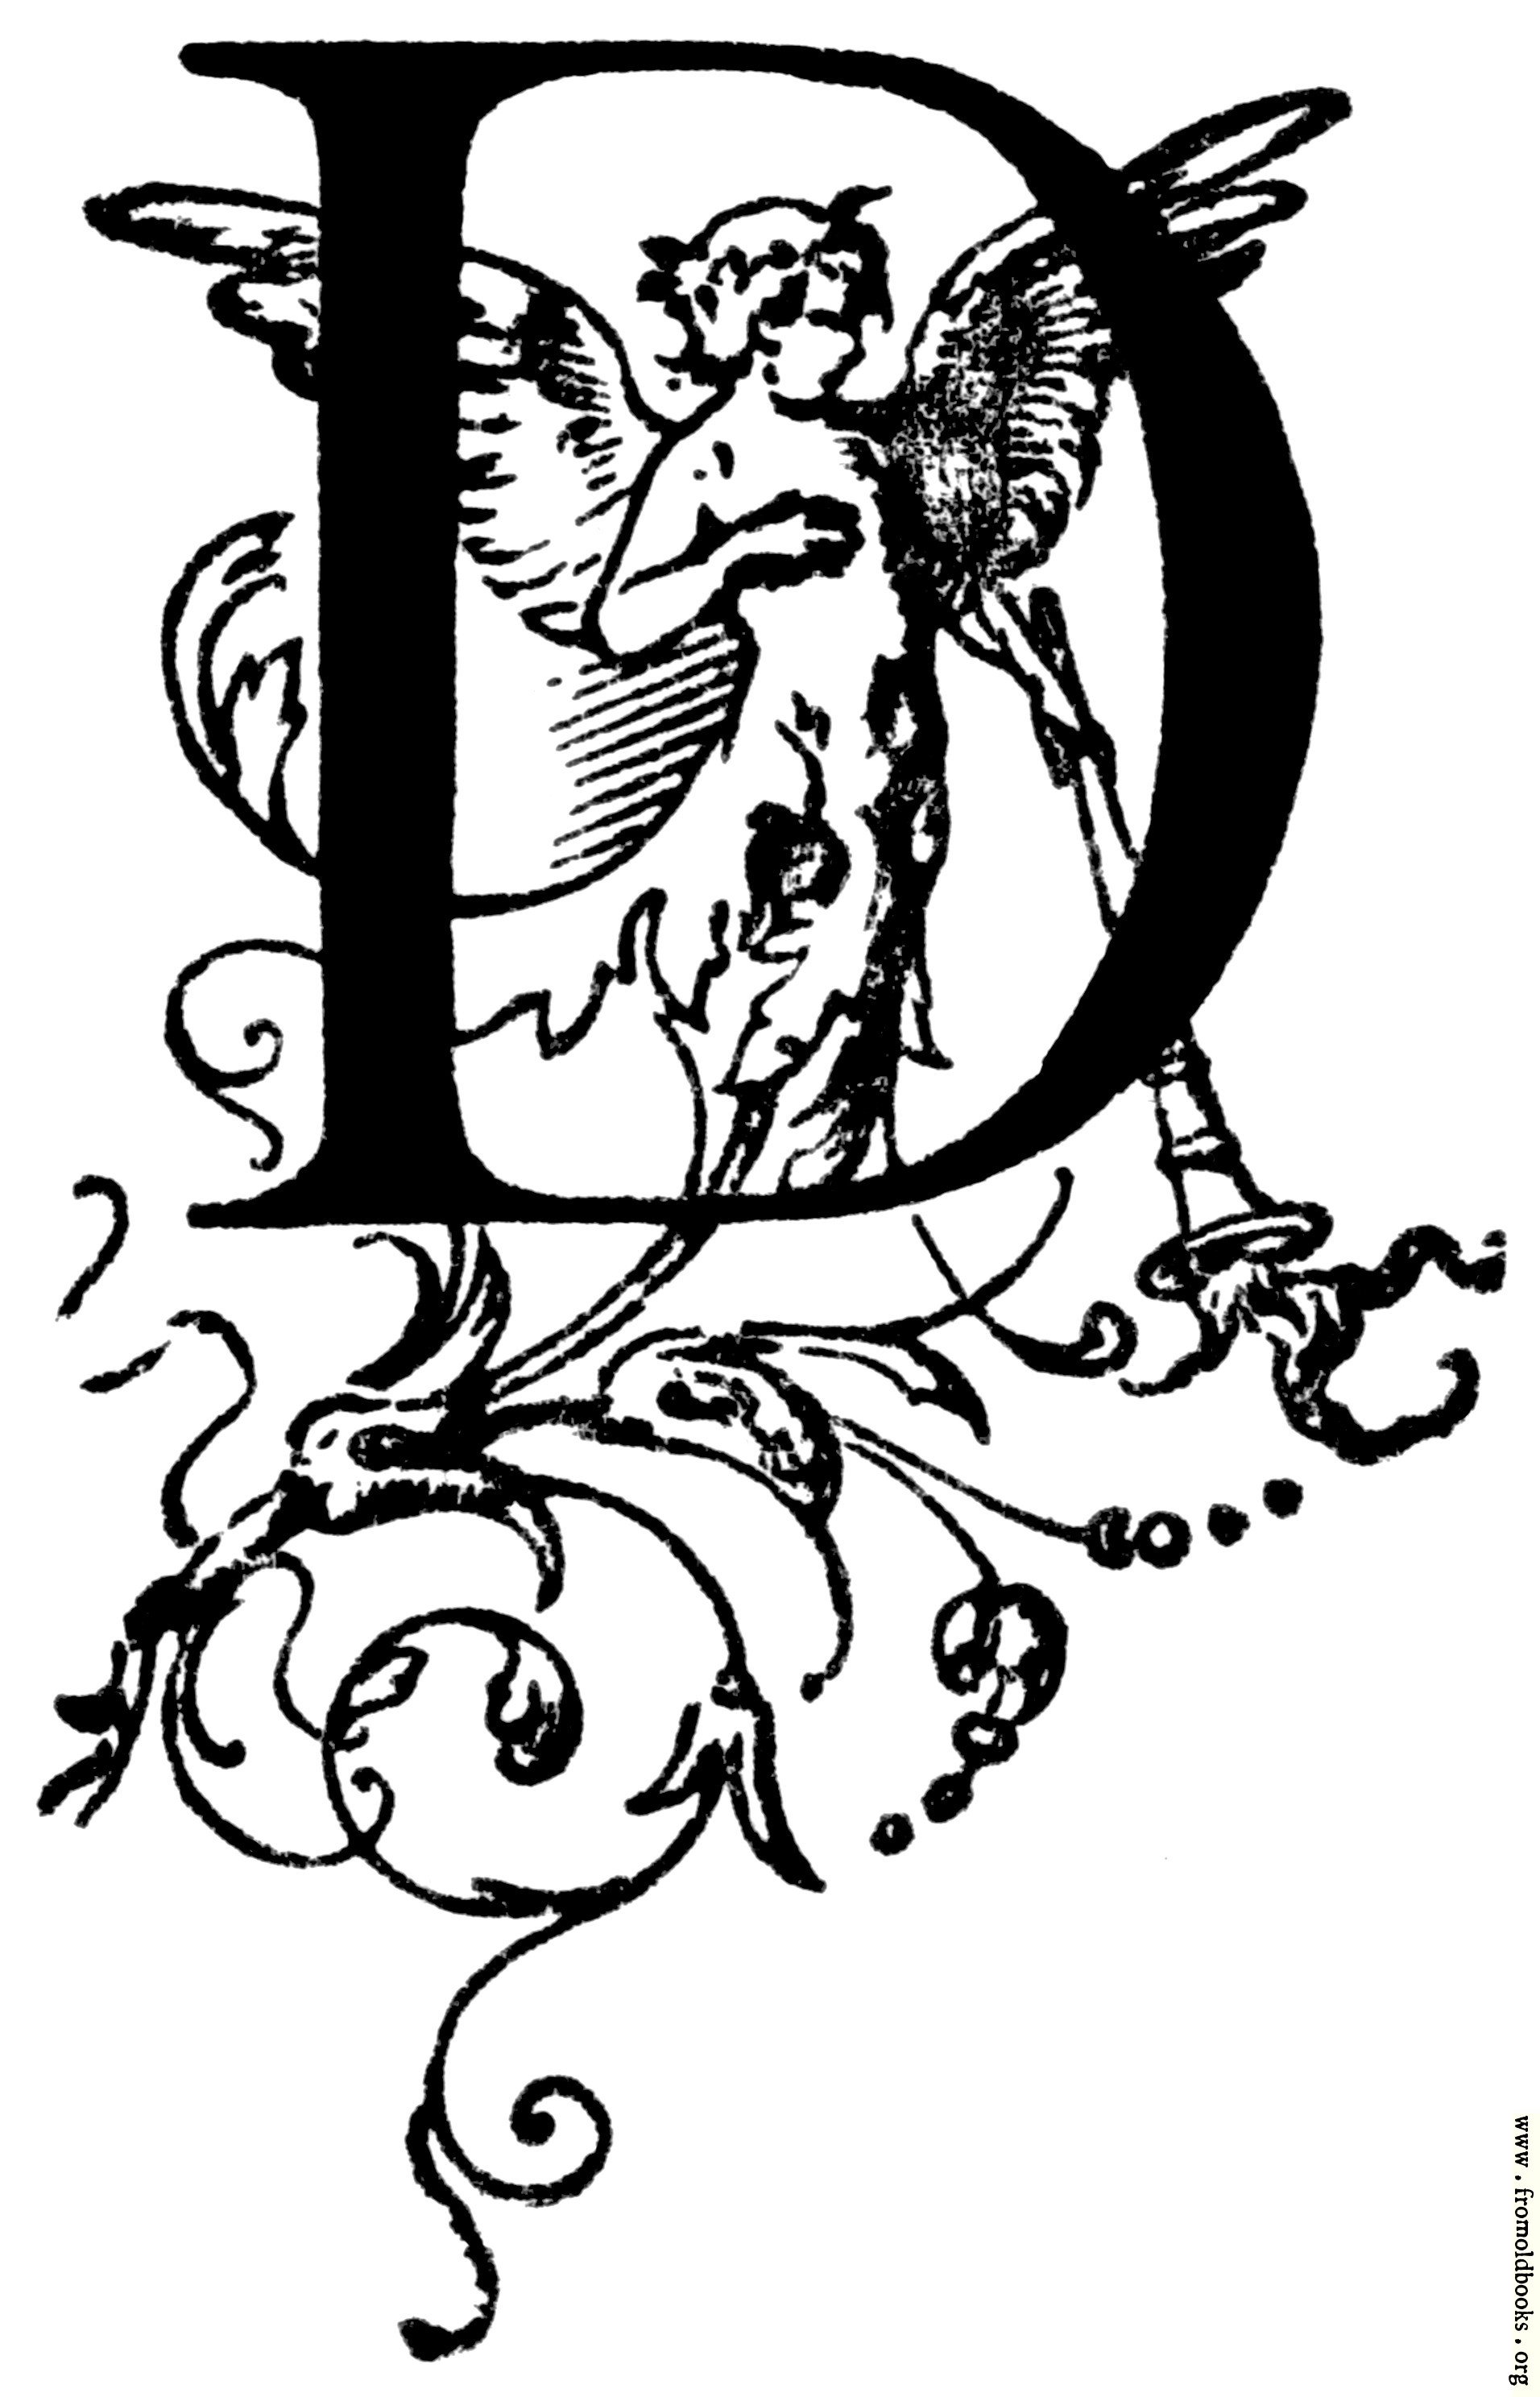 162 initial letter d q85 321x500g 1912x2976 393k jpg free download altavistaventures Image collections